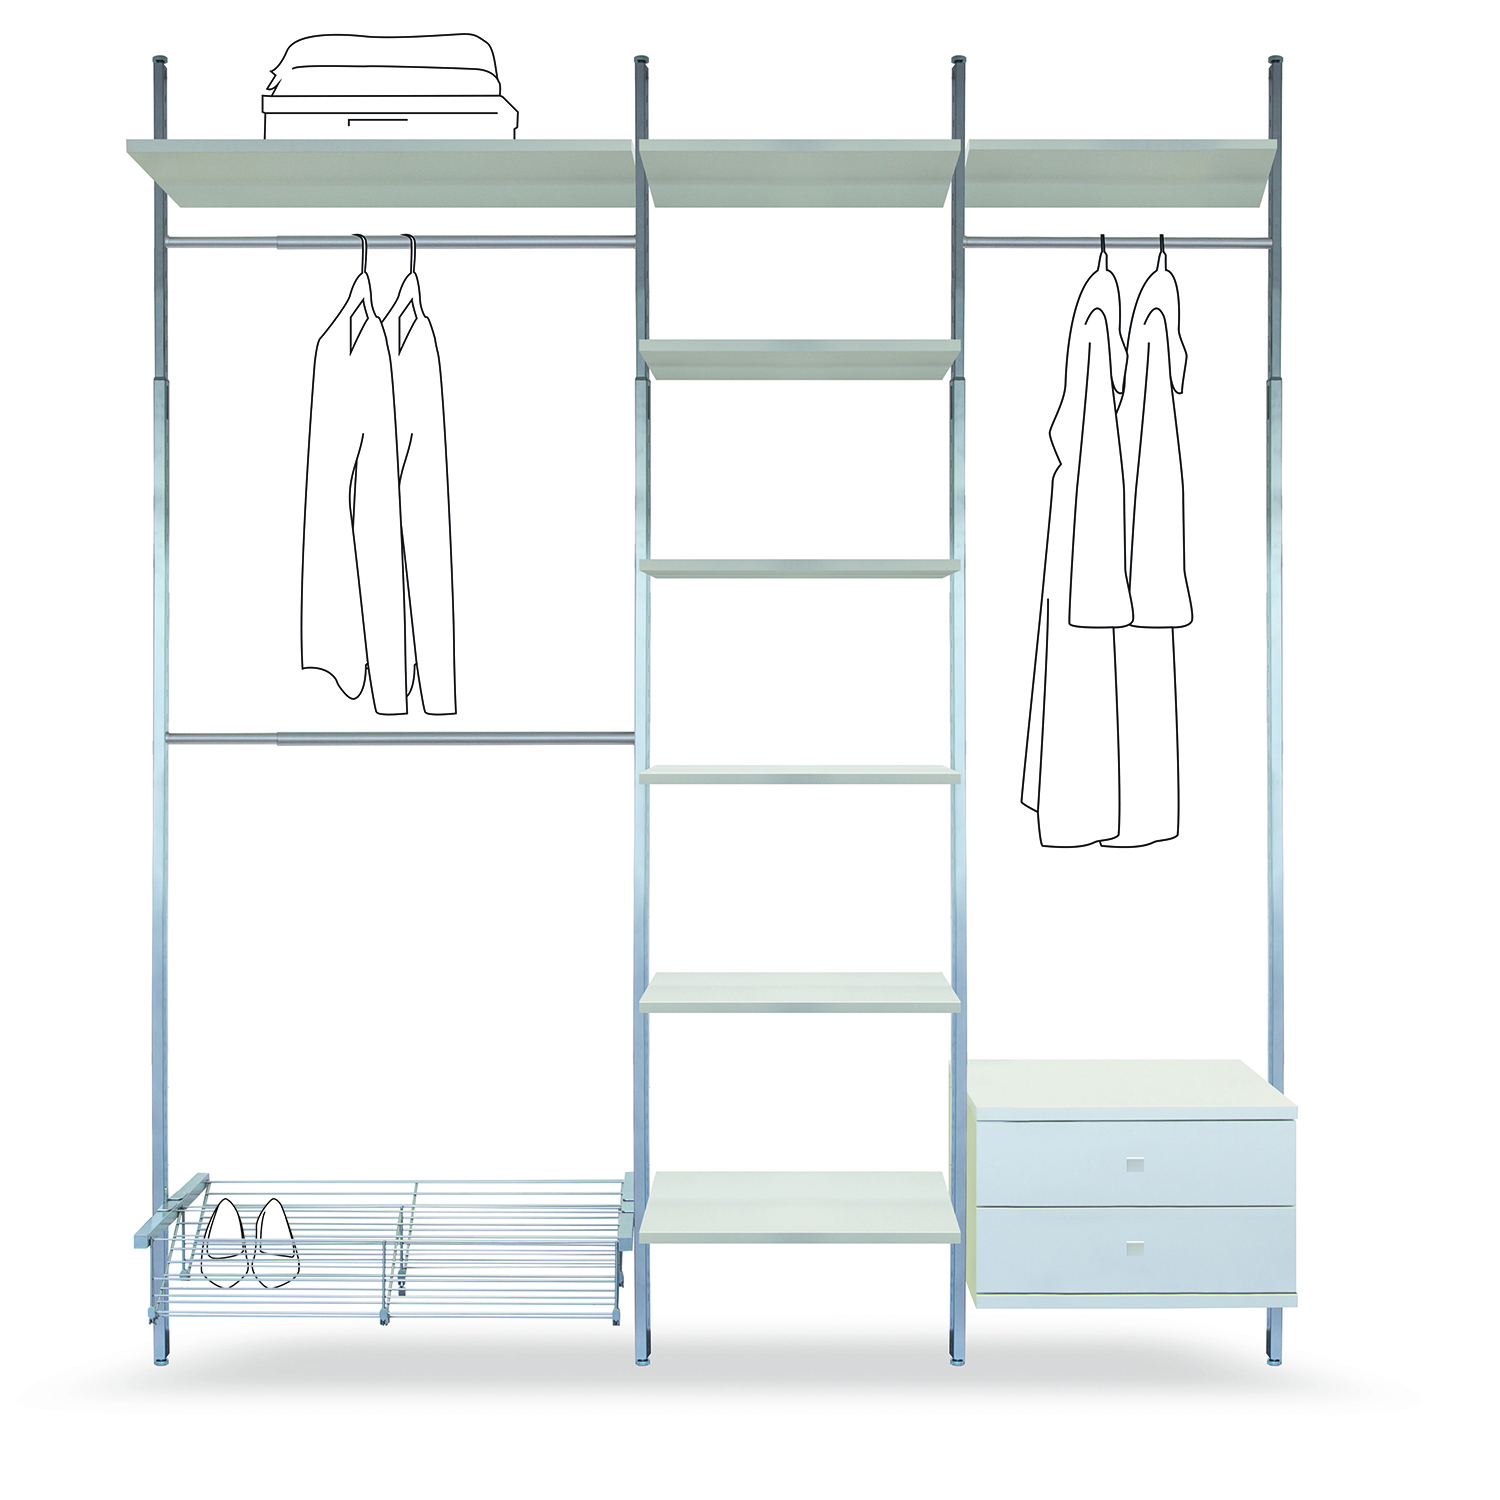 Interior storage system for sliding wardrobe